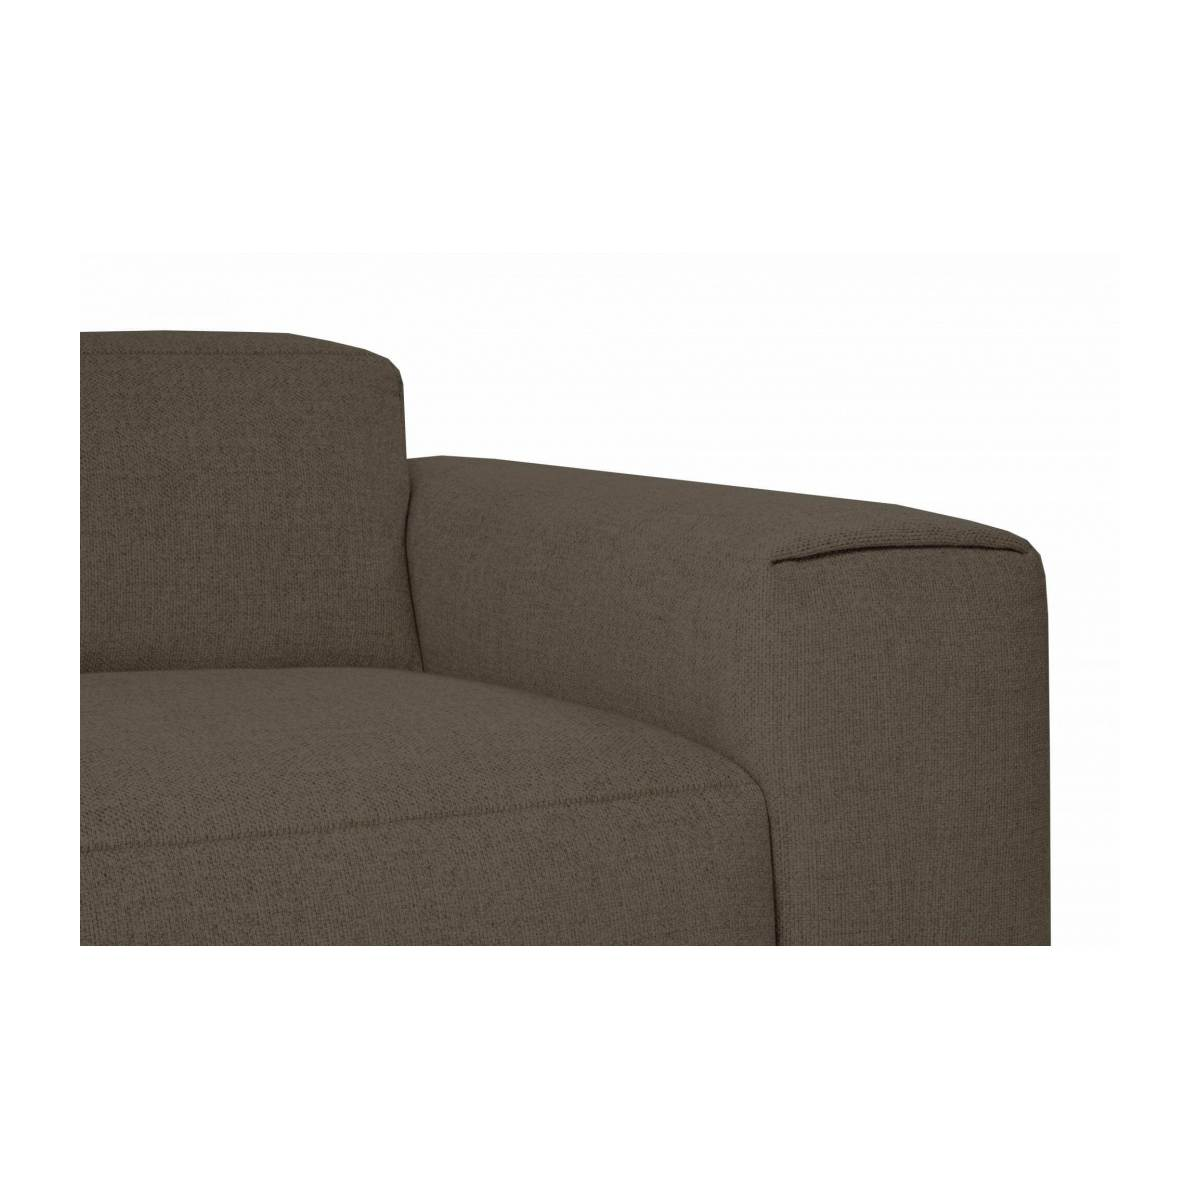 4 seater sofa in Lecce fabric, muscat n°5